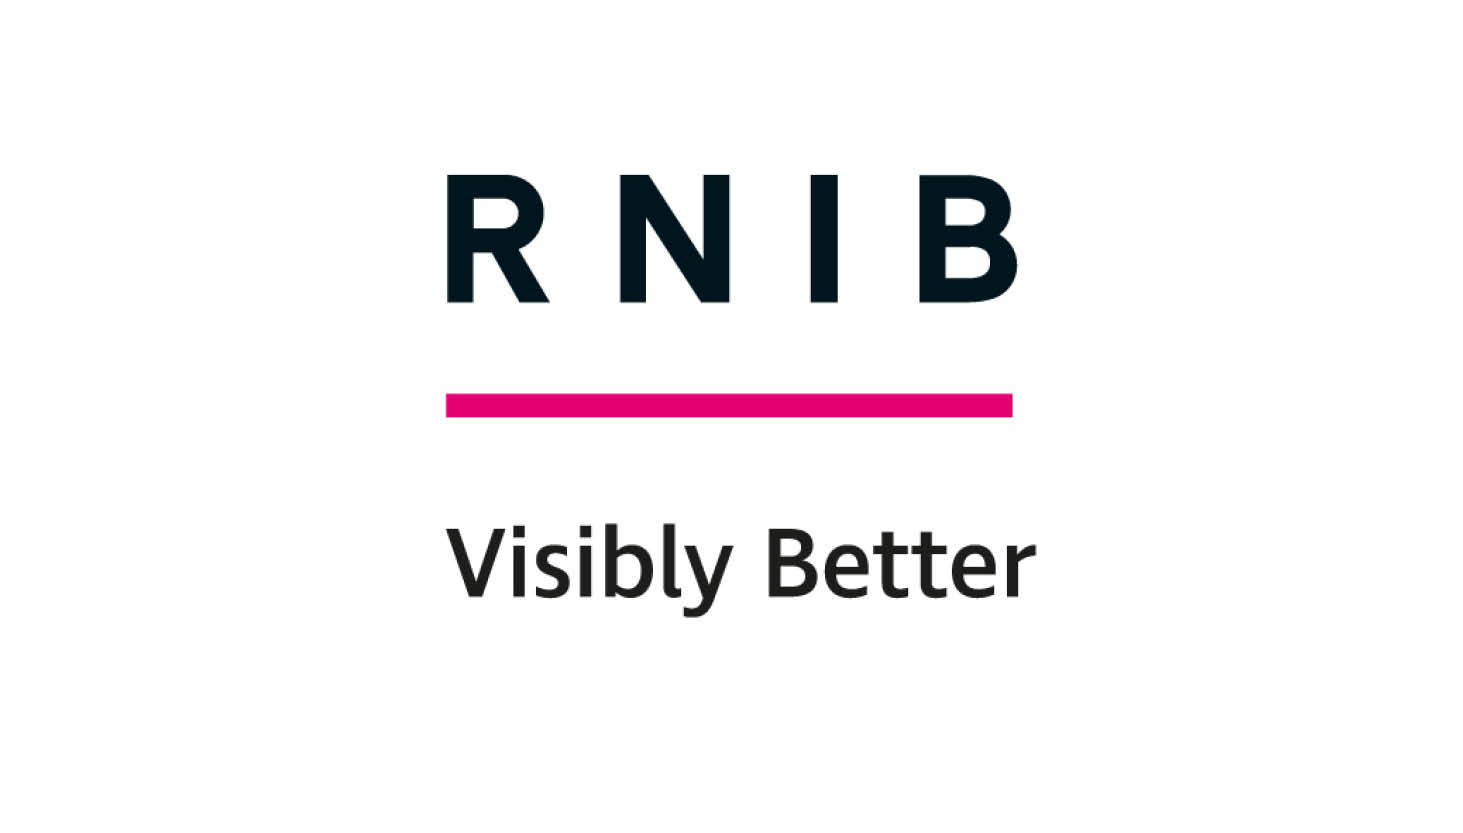 RNIB logo with Visibly Better written underneath